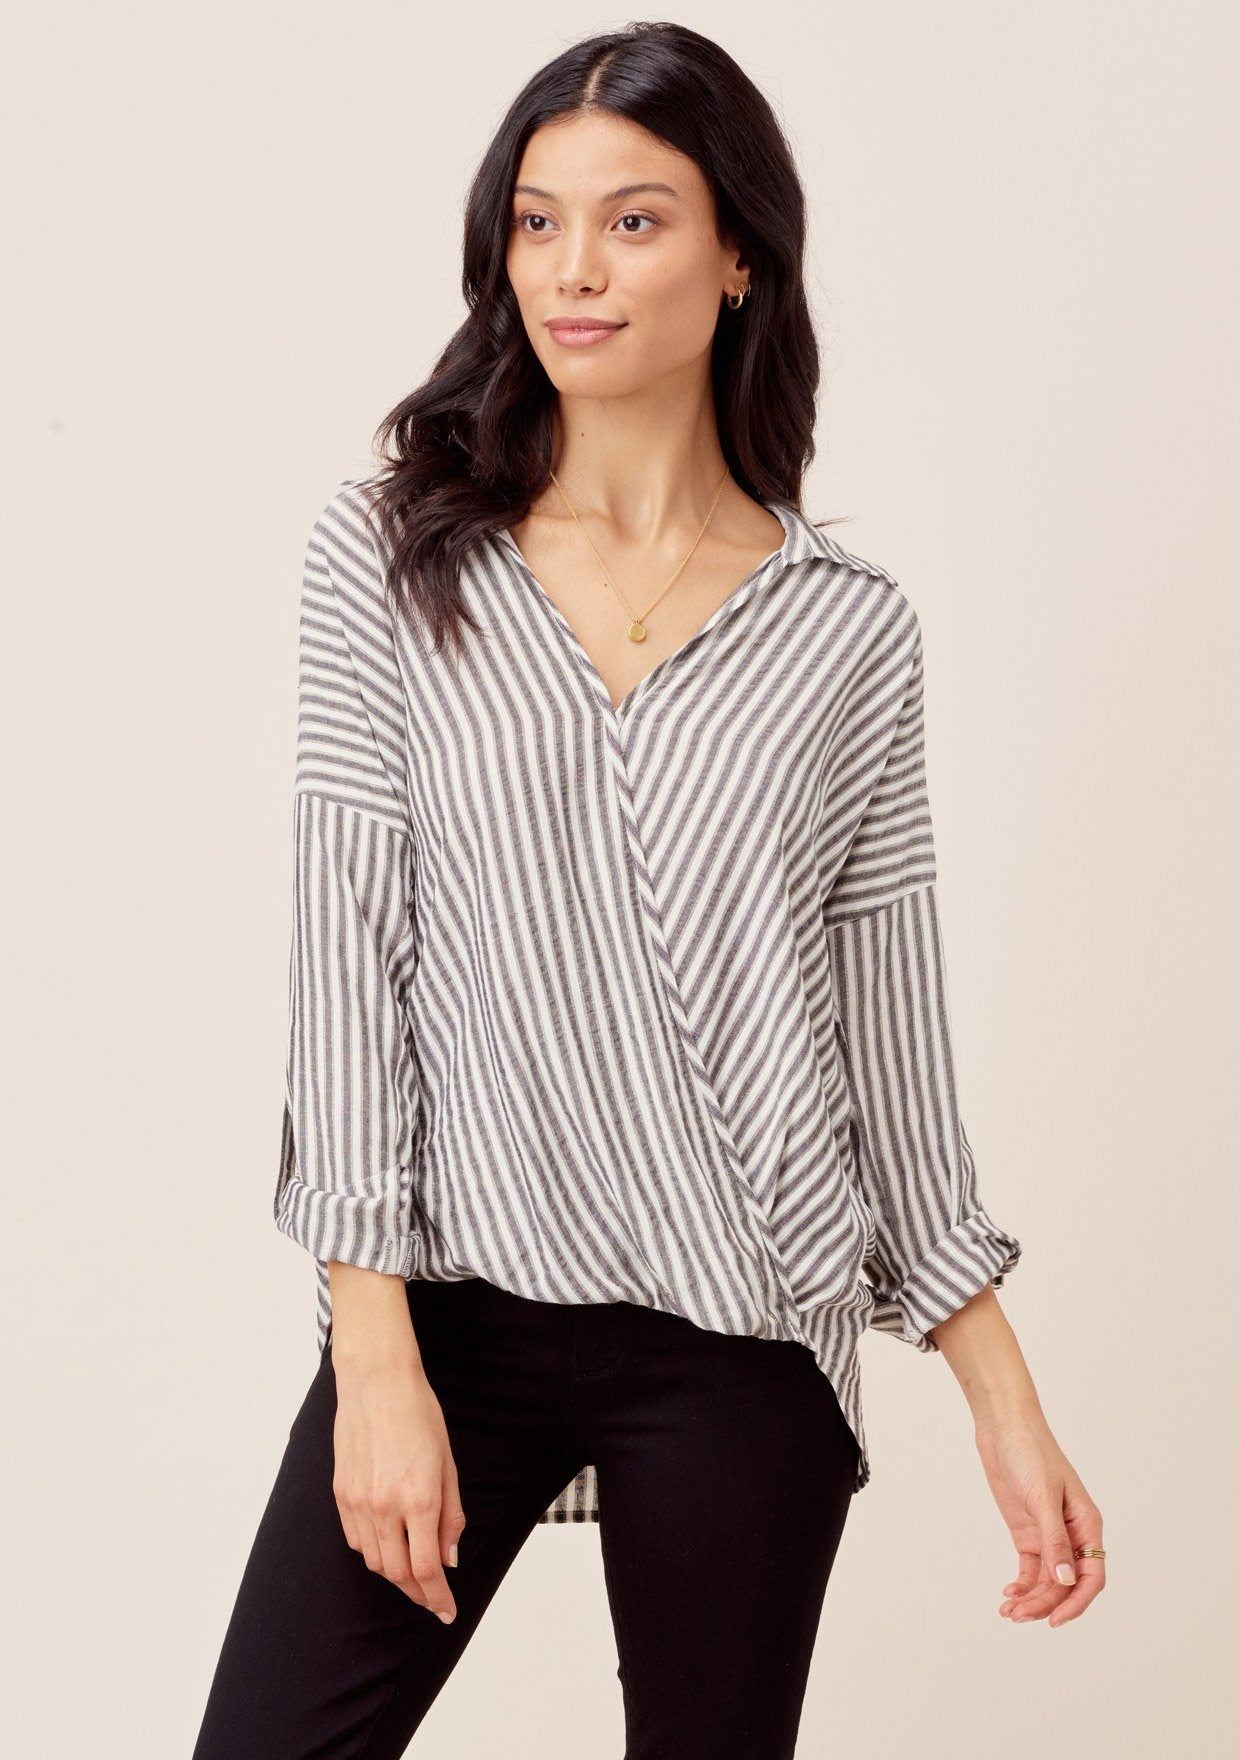 [Color: Black/Gold] Lovestitch Metallic striped, long roll tab sleeve, surplice top with high-low hem.